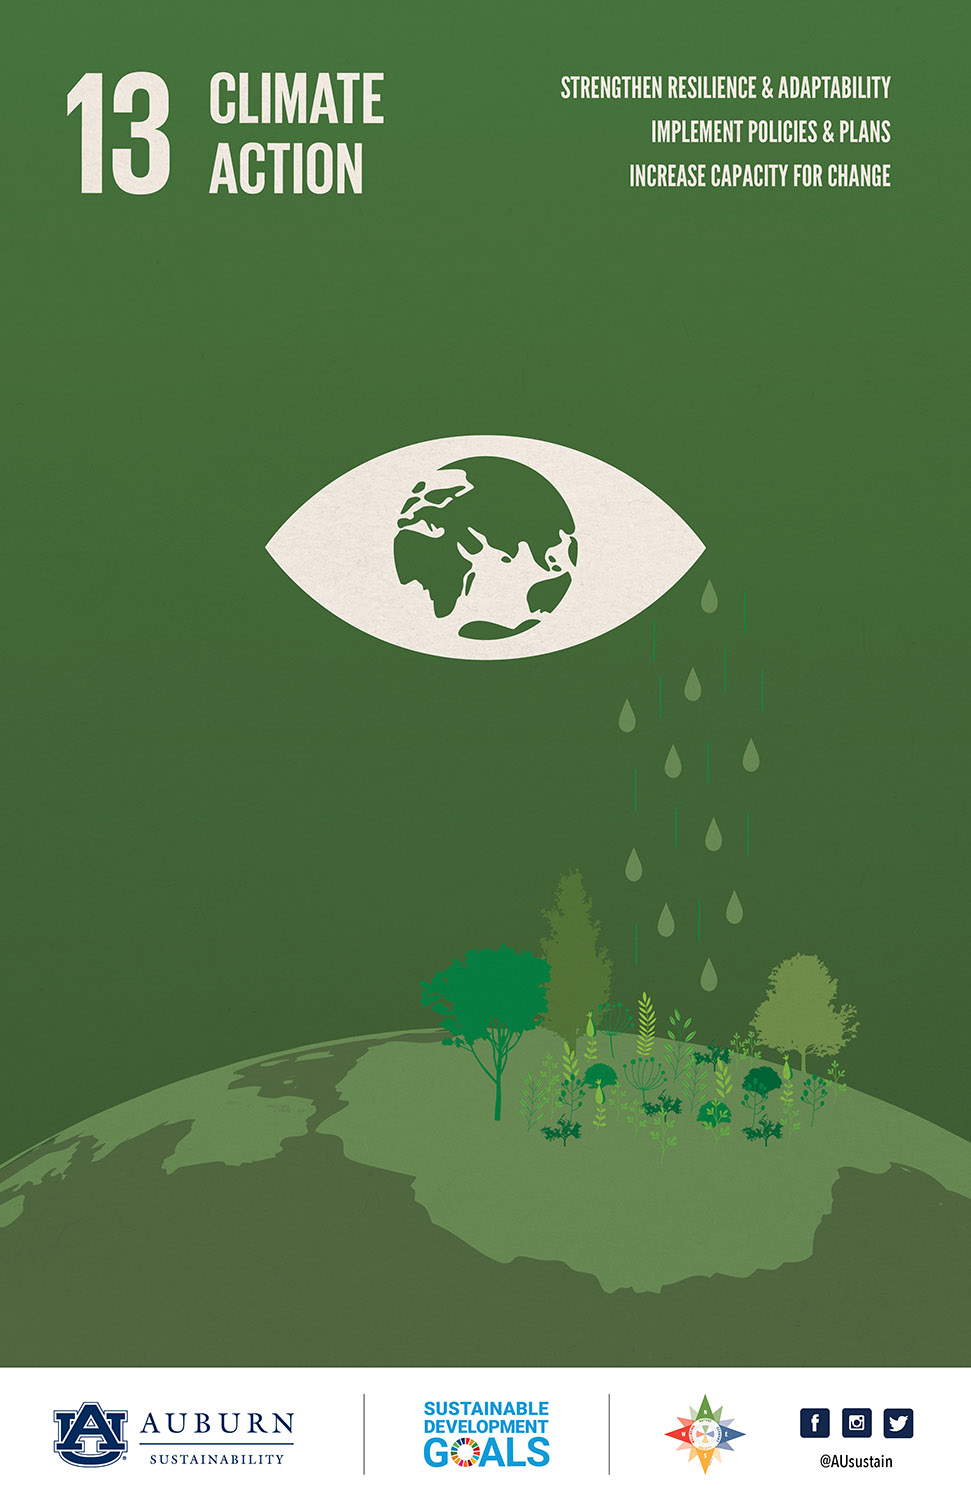 Sustainable Development Goal 13 Poster illustration: Climate Action. Goals include: Strengthen resilience & adaptability, implement policies & plans, and increase capacity for change.